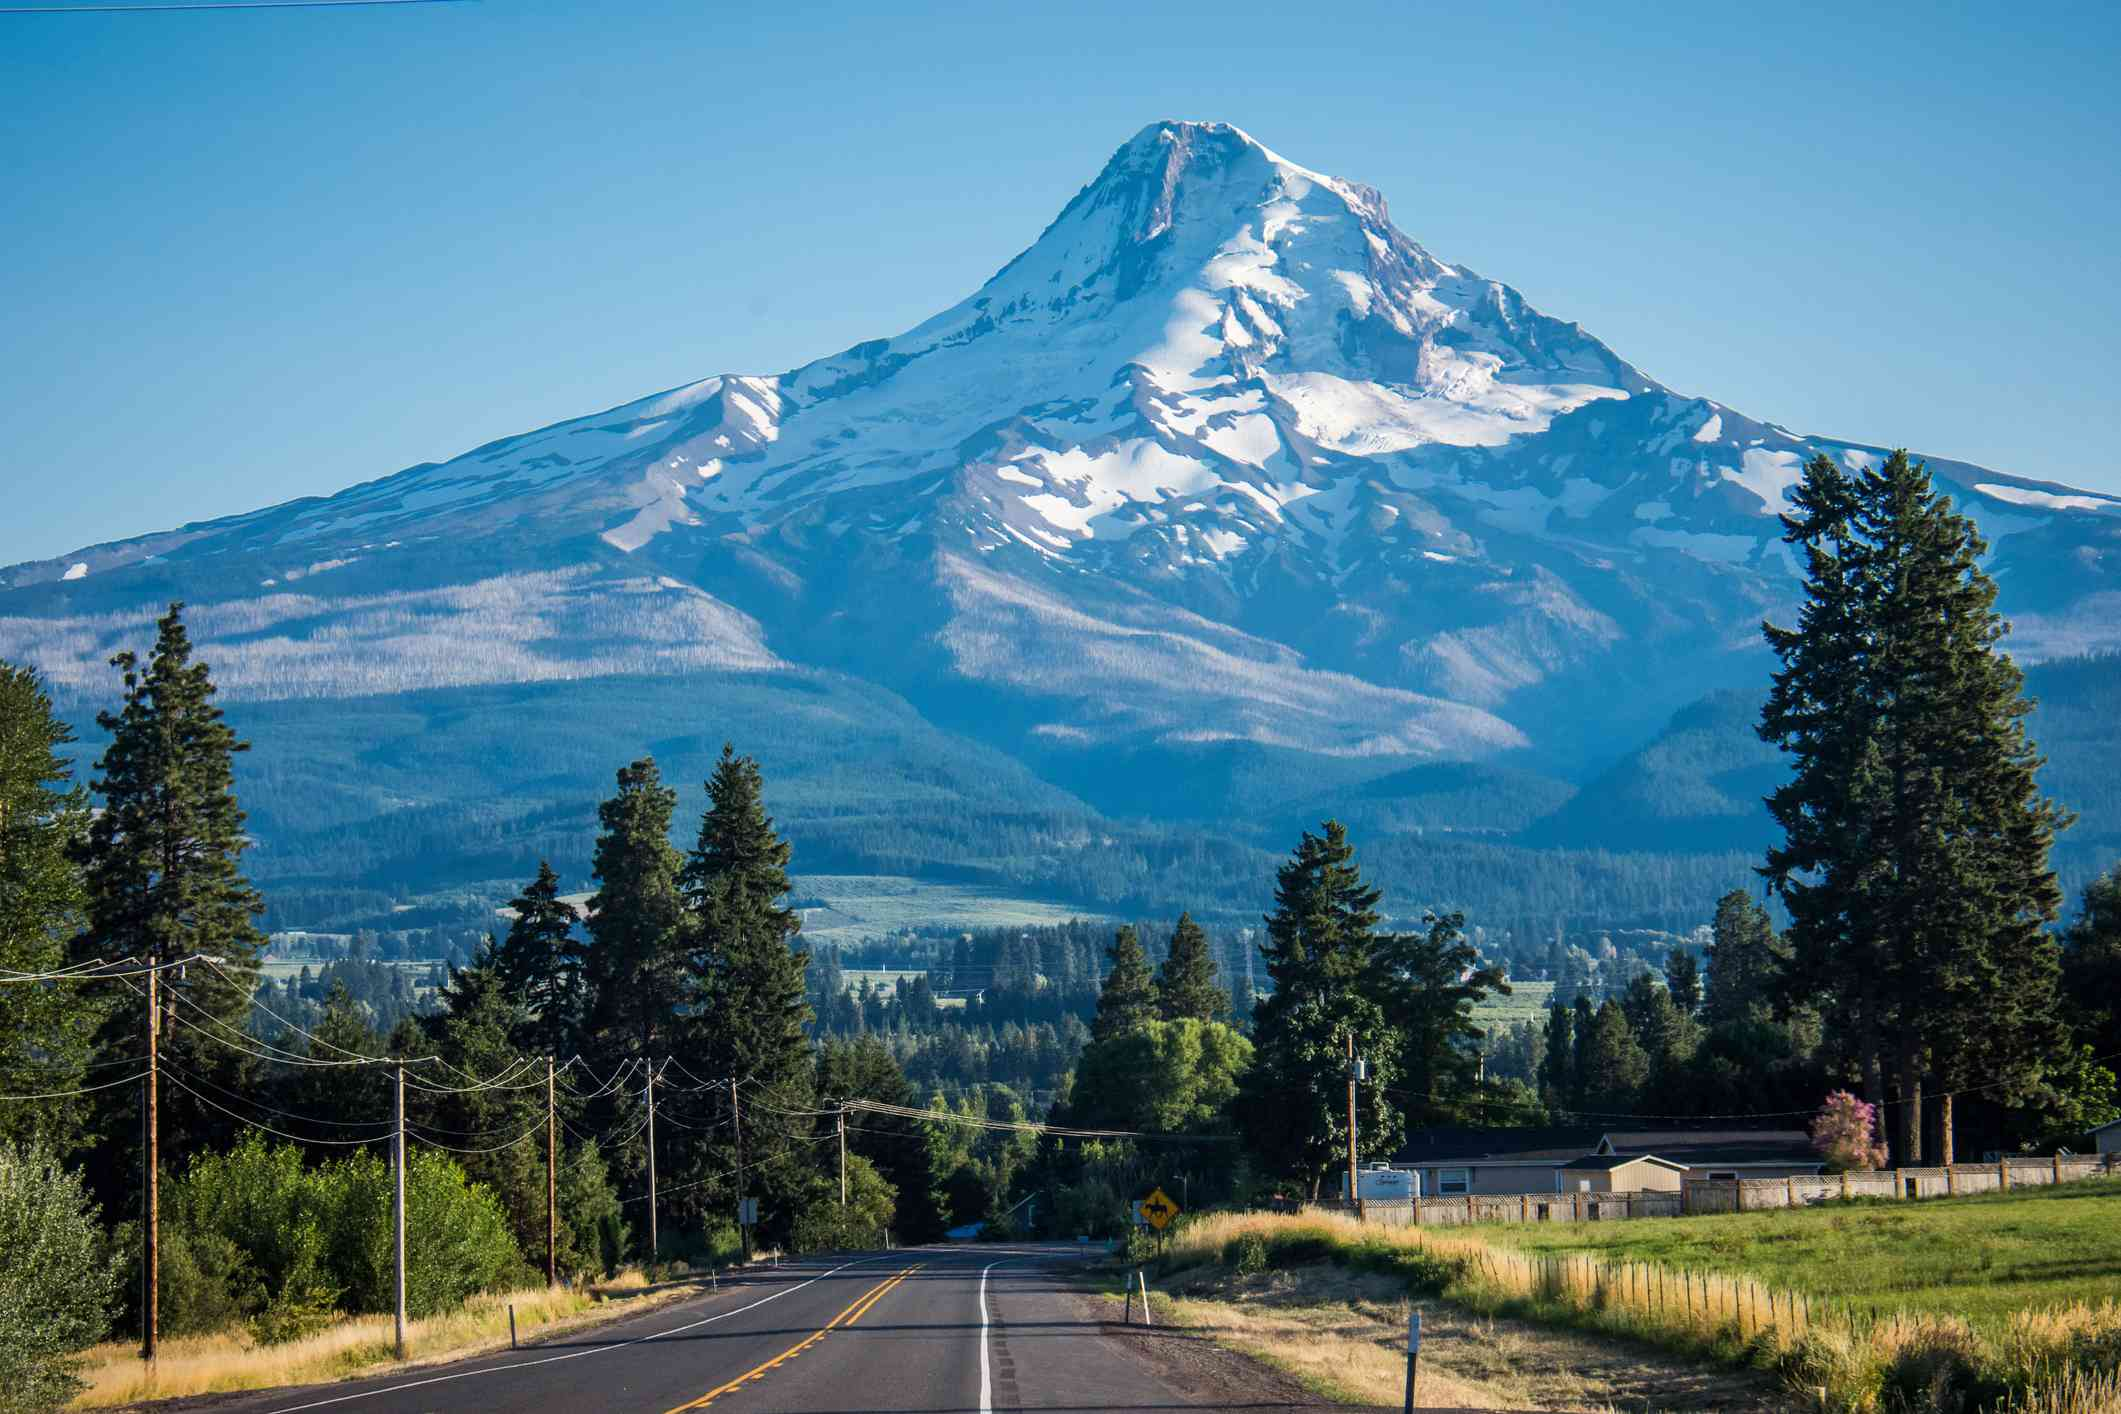 The road through Mt. Hood's Fruit Loop with Mt. Hood mountain looming in the background in Oregon